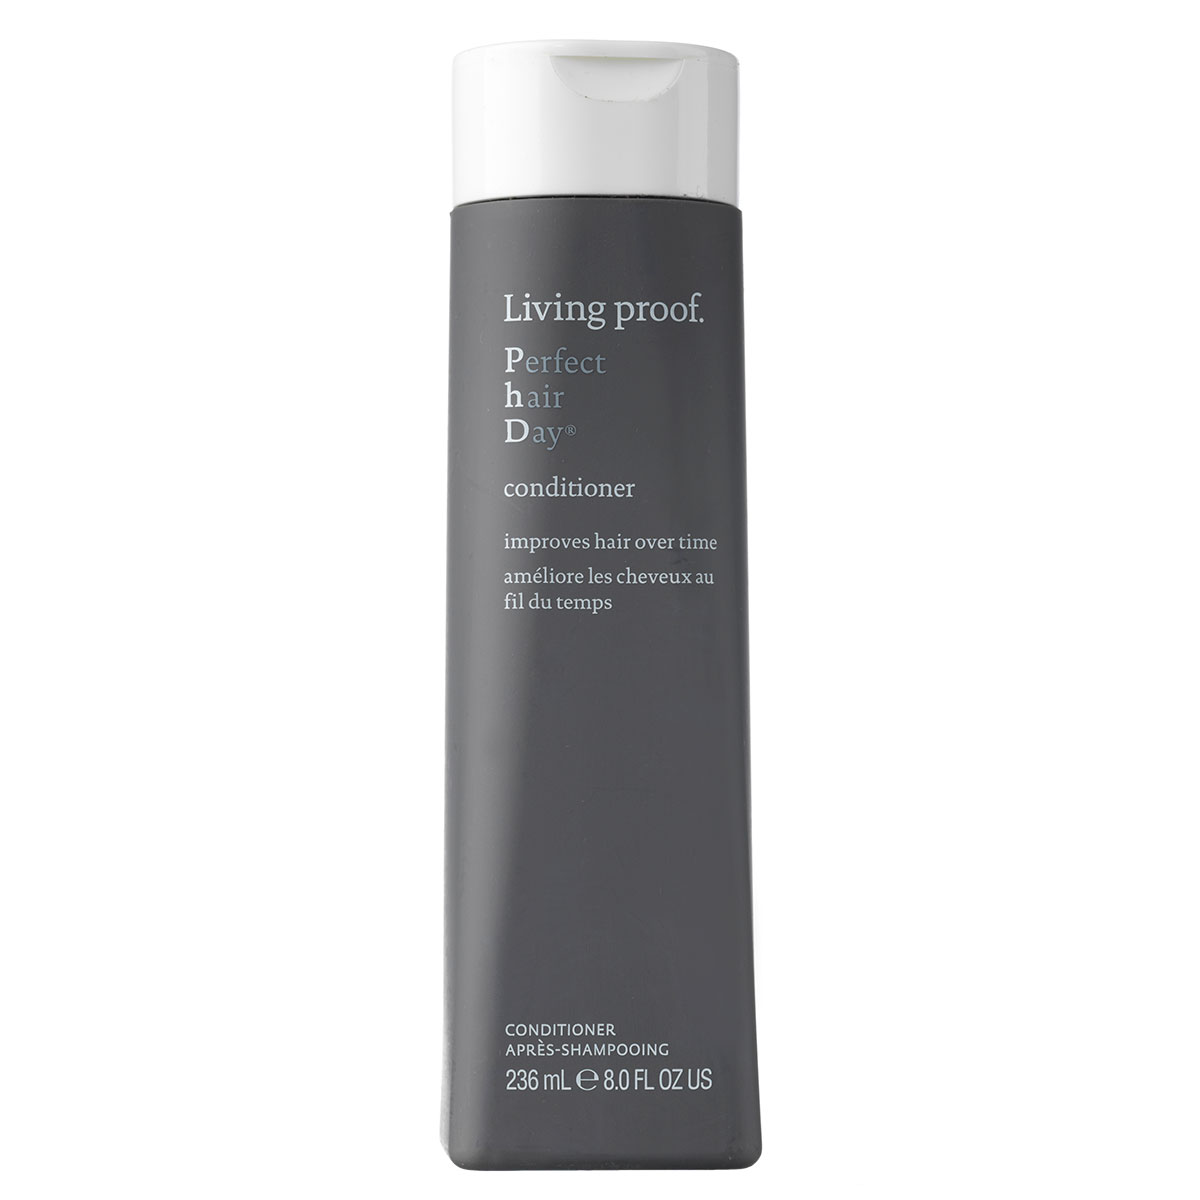 Living Proof Perfect Hair Day Conditioner - 236 ml